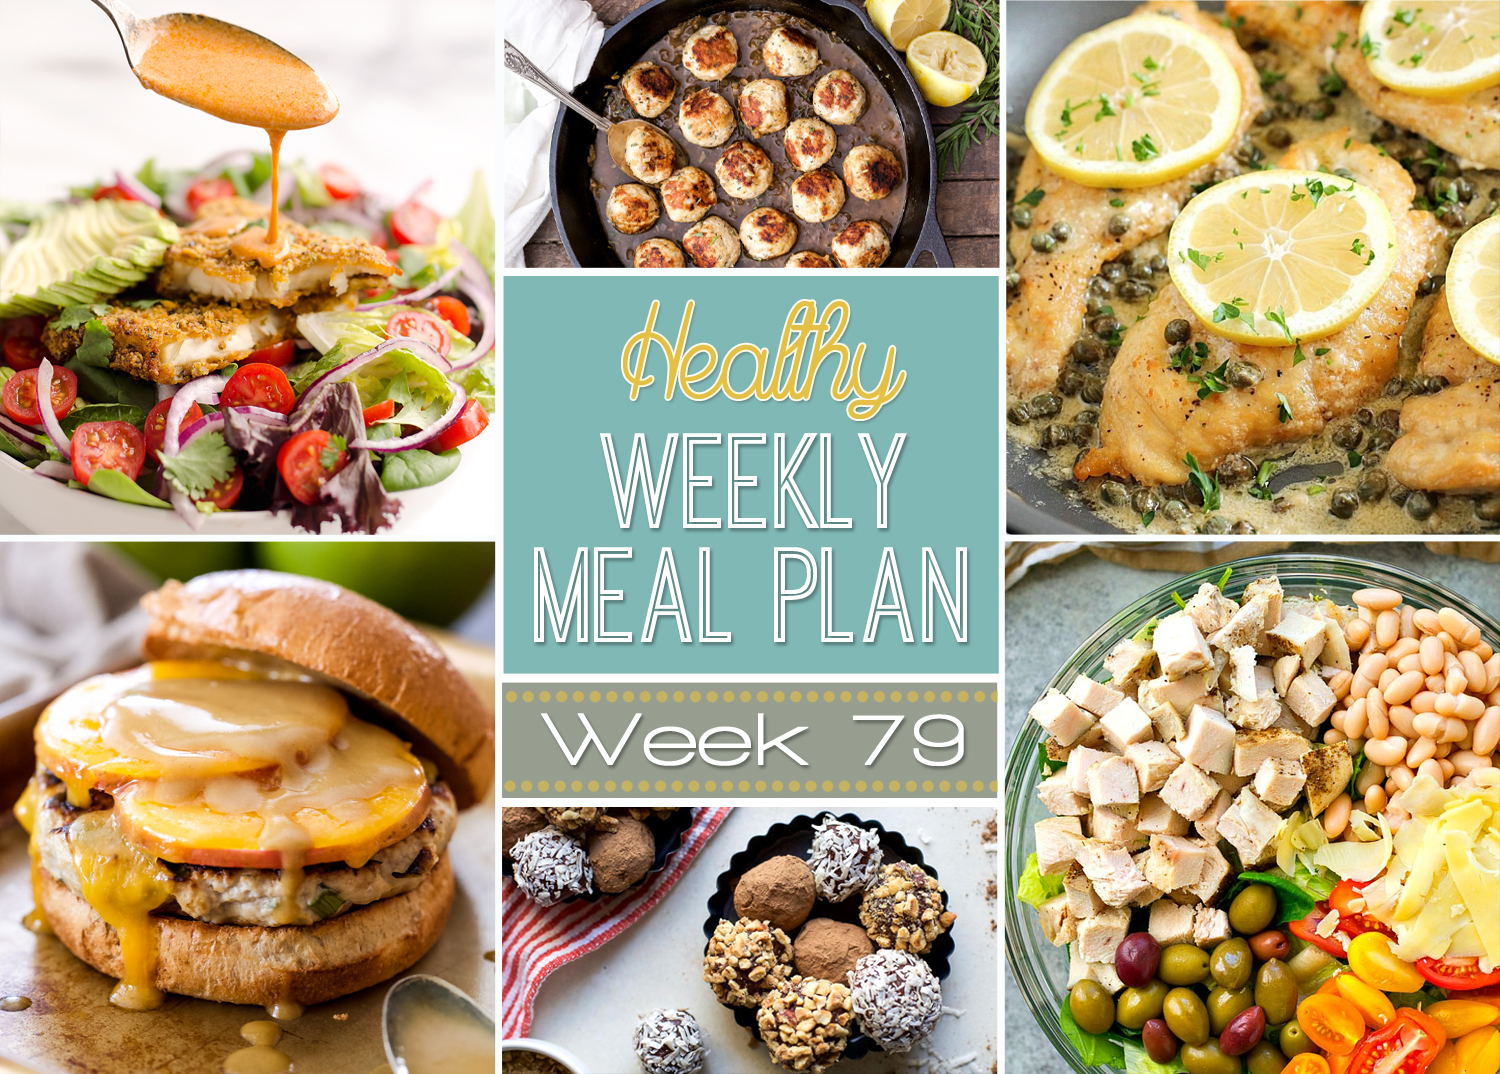 This week's healthy meal plan is Apple Cheddar Turkey Burgers and a Southwest Tortilla Crusted Tilapia Salad!